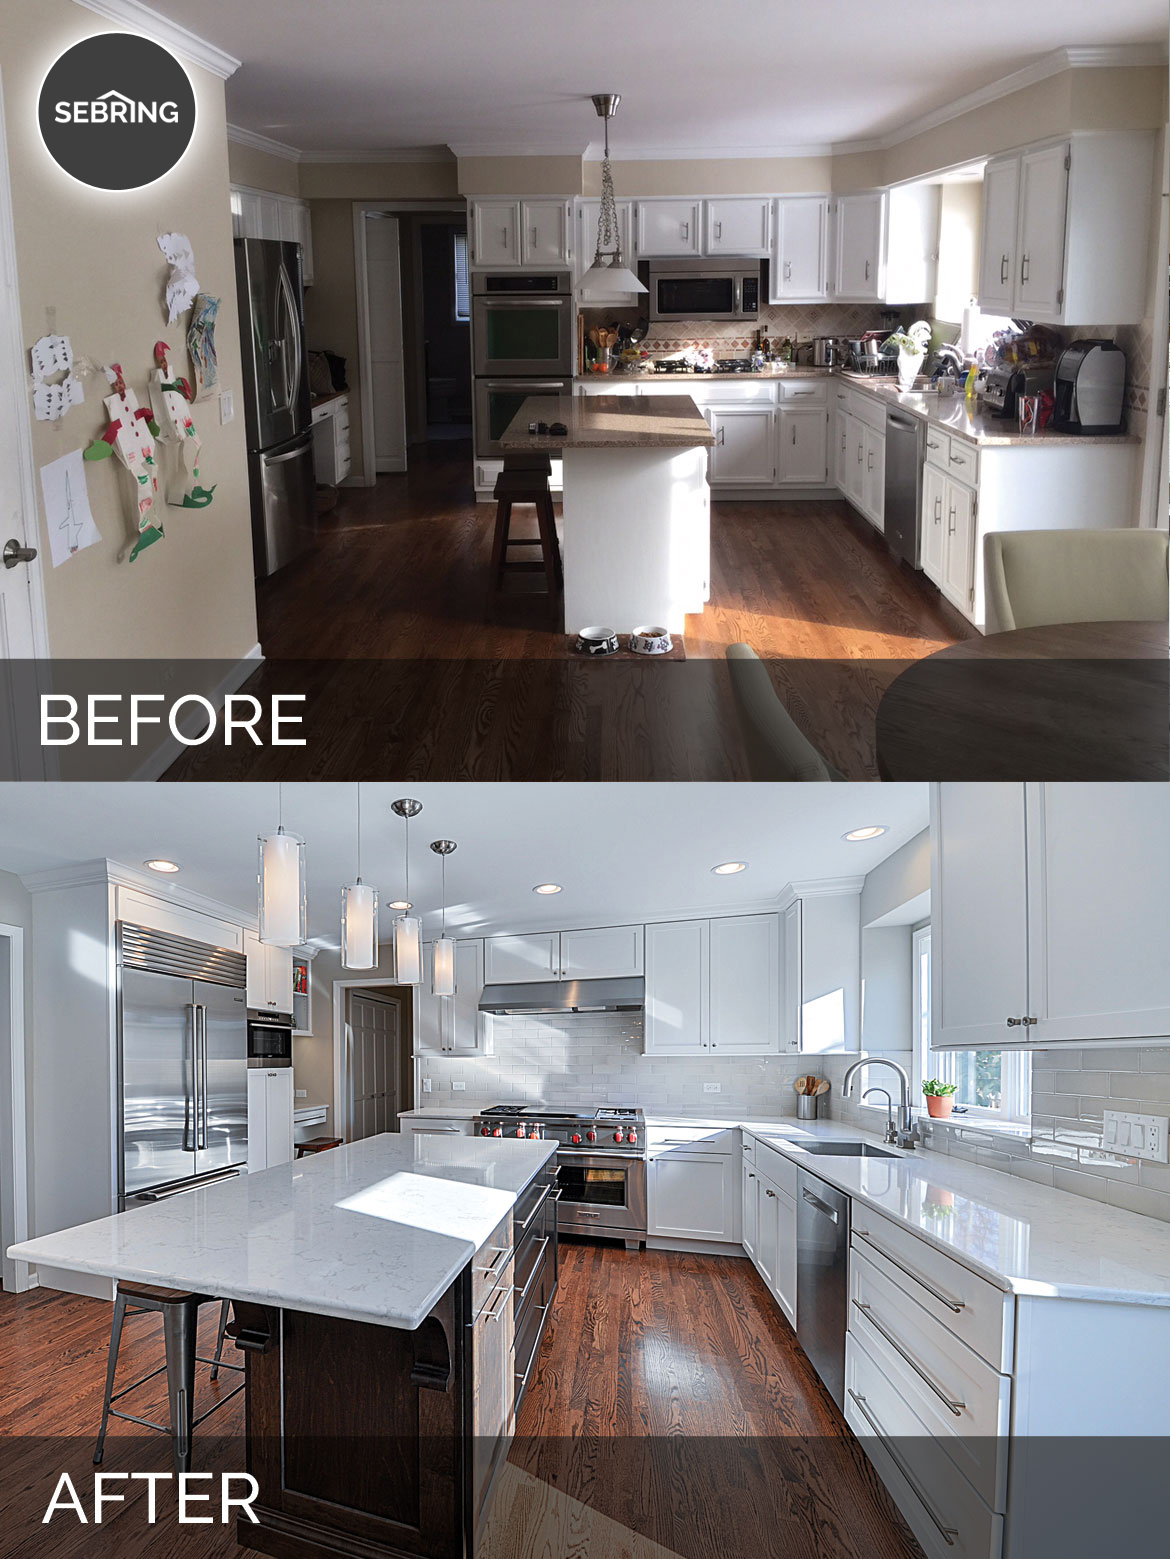 Derek & Christine\'s Kitchen Before & After Pictures | Home ...